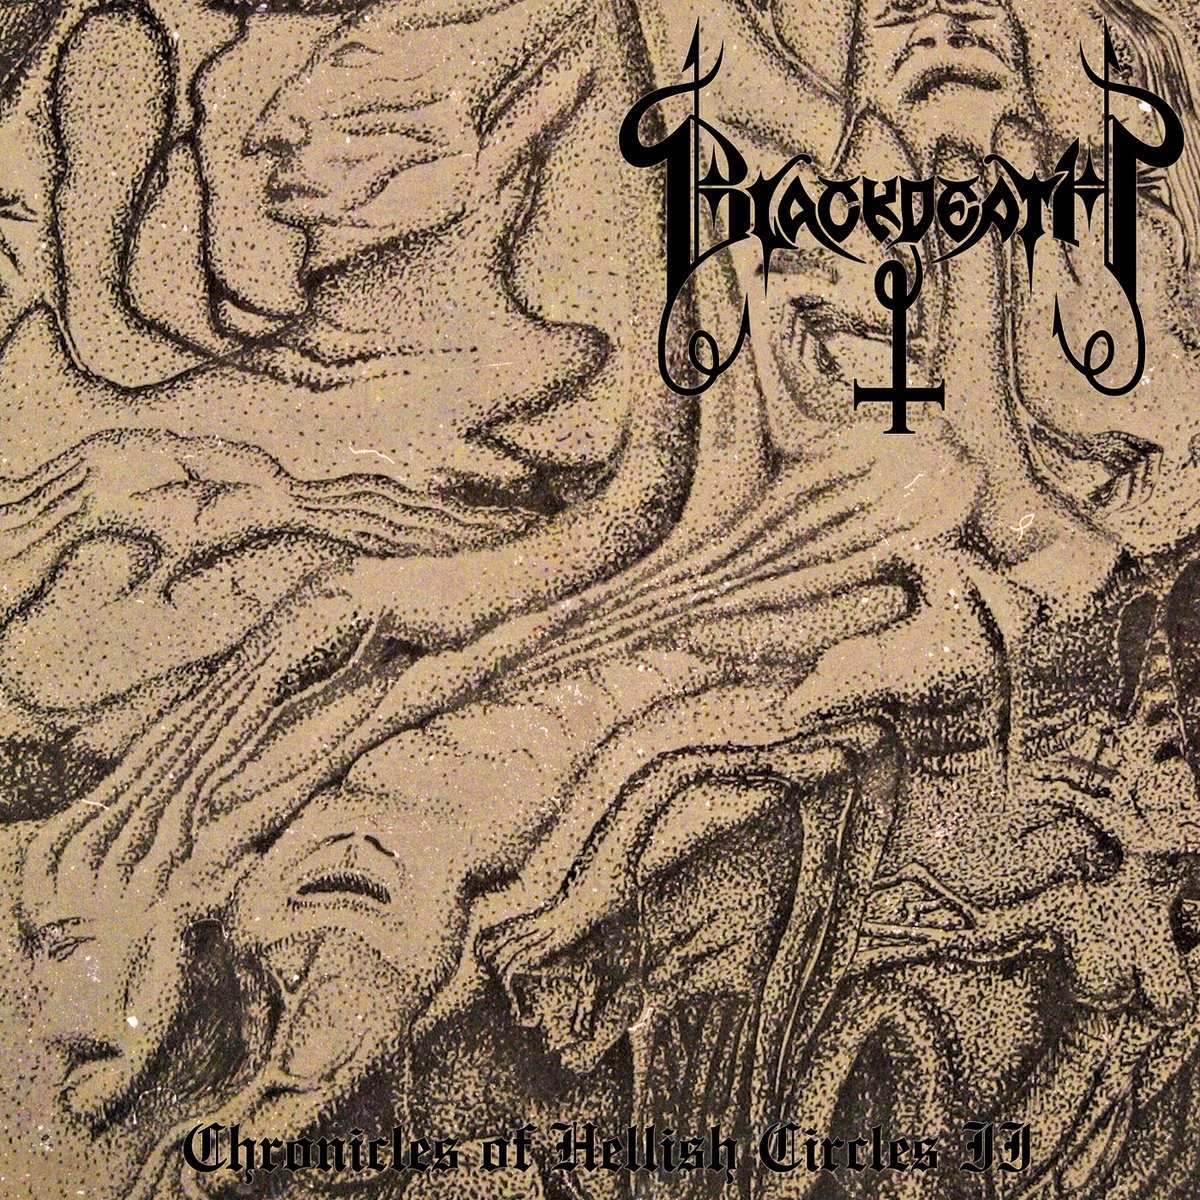 Review for Blackdeath - Chronicles of Hellish Circles II